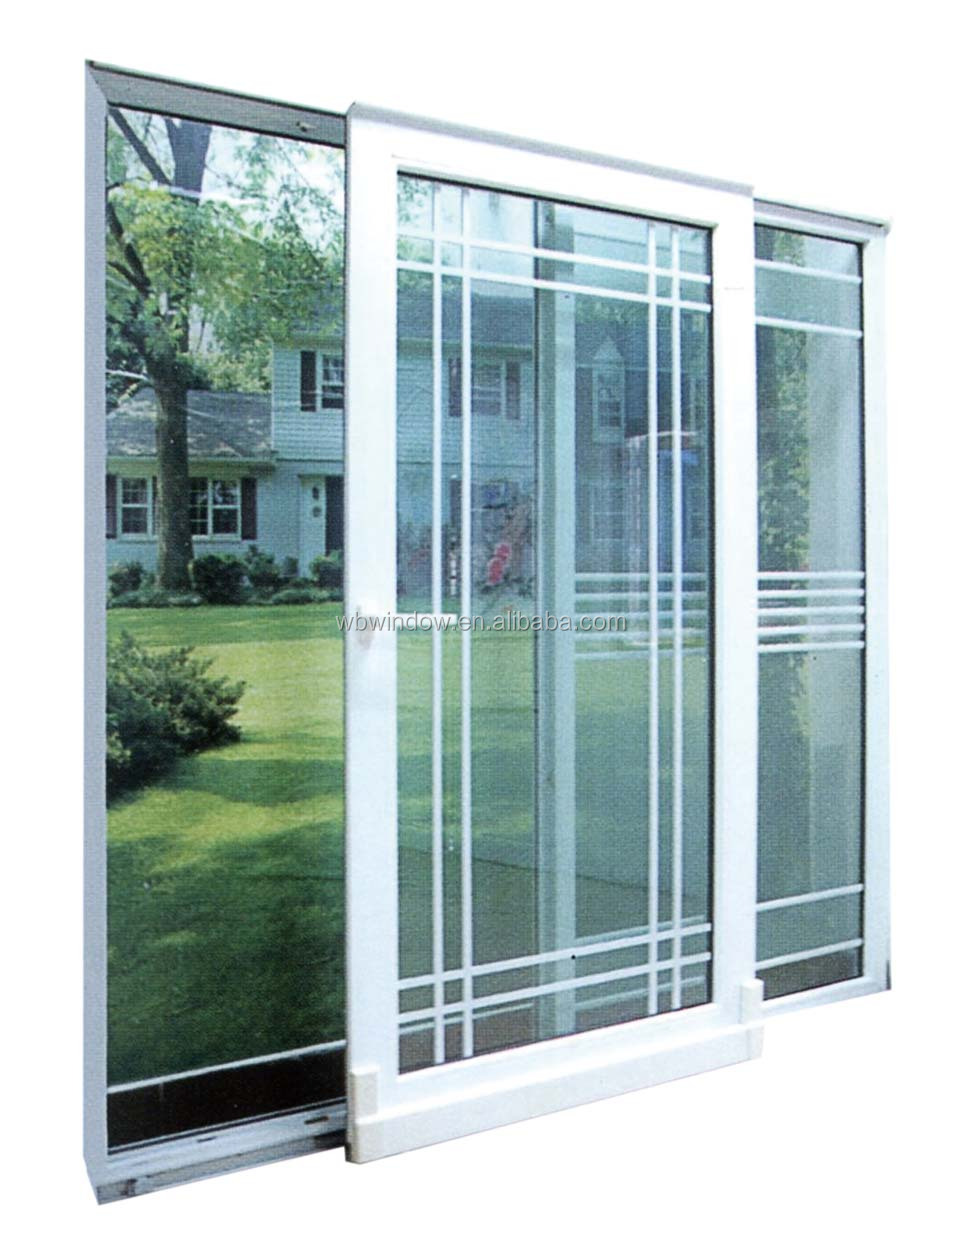 Energy star double triple insulating glass pvc upvc for Double glazed sliding patio doors